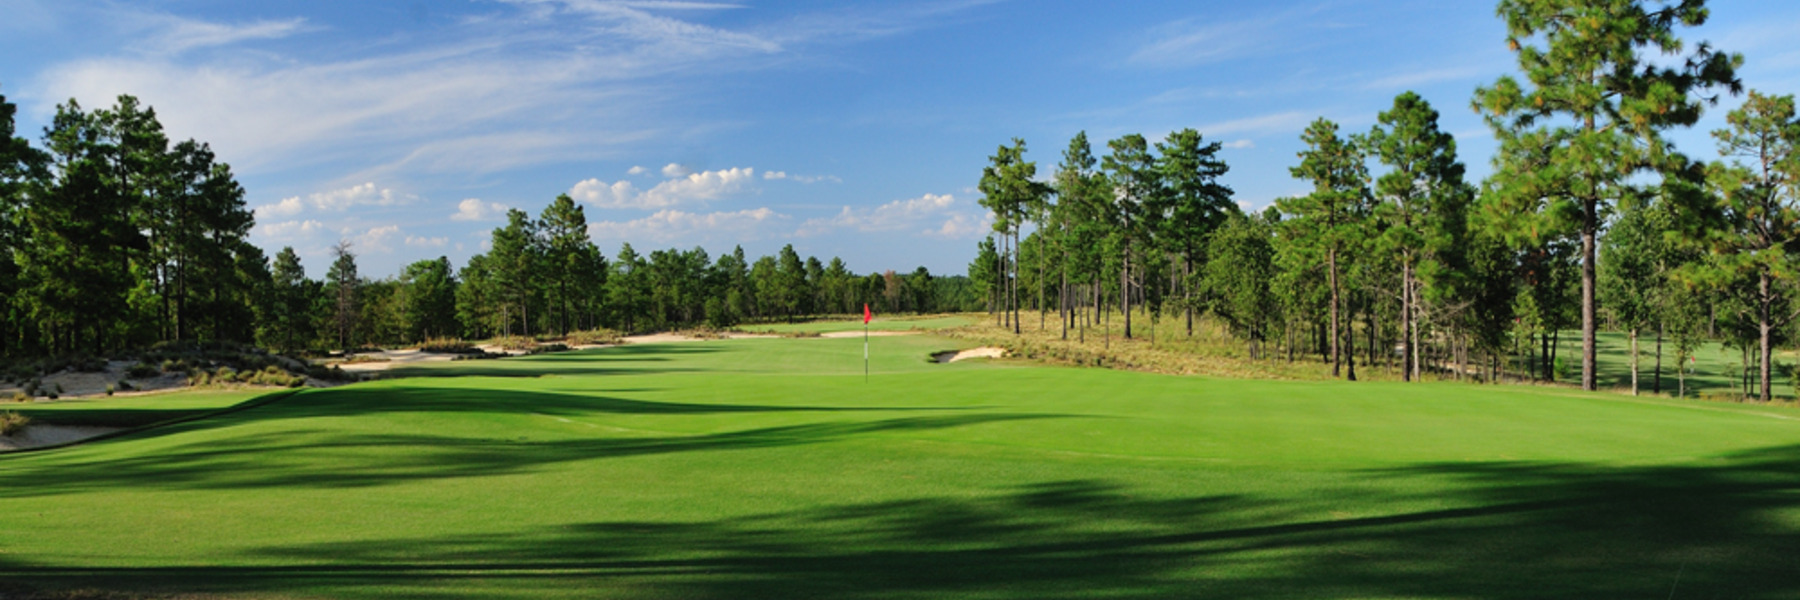 Golf Vacation Package - Dormie Golf Club